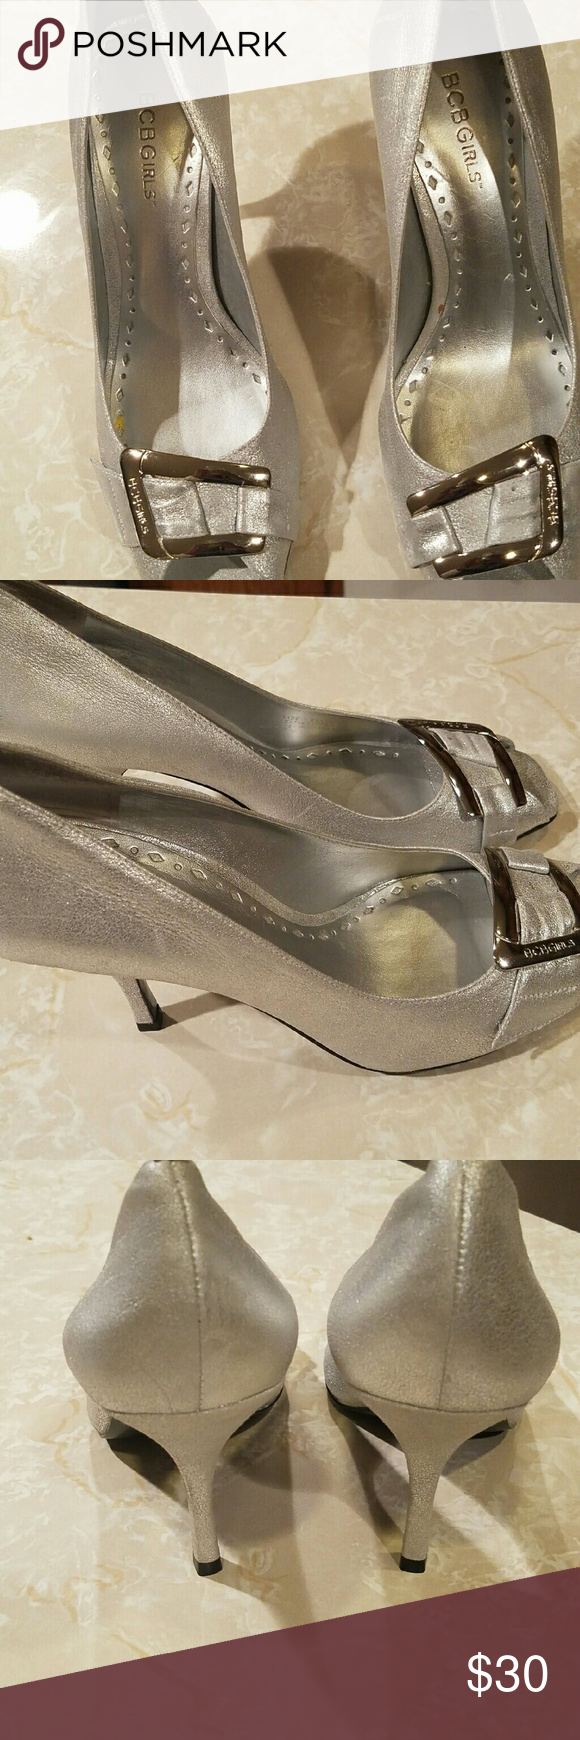 NEW BCBG SILVER DRESS PUMPS Dressy silver pumps perfect for a formal affair like a wedding , prom or dress up a pair of jeans with these babies and a glitzy top. BCBGirls Shoes Heels